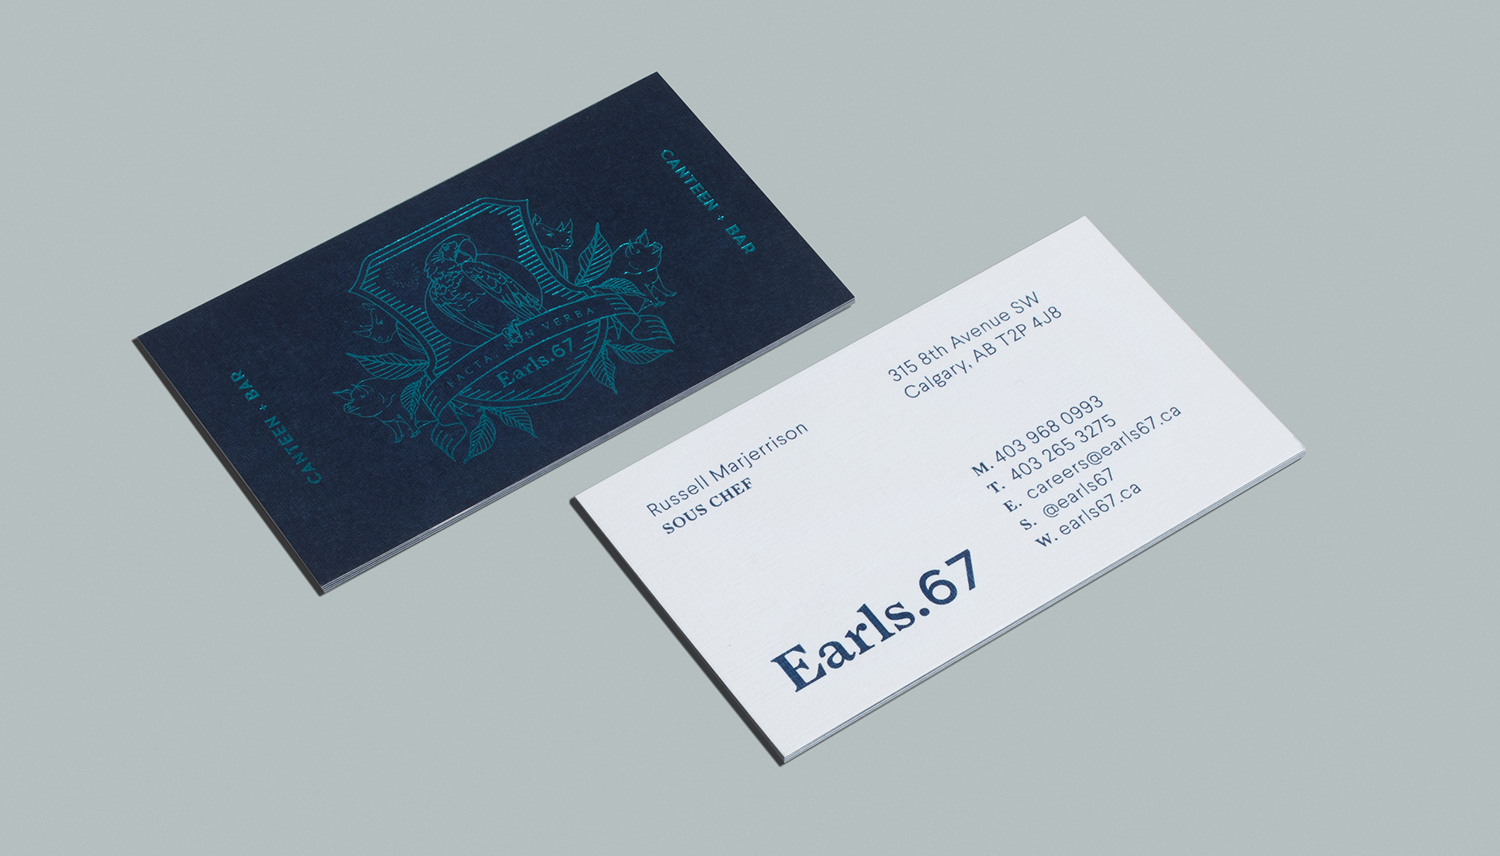 Brand identity and business cards with blue block foil print finish by Glasfurd & Walker for US and Canadian restaurant chain prototype Earls.67